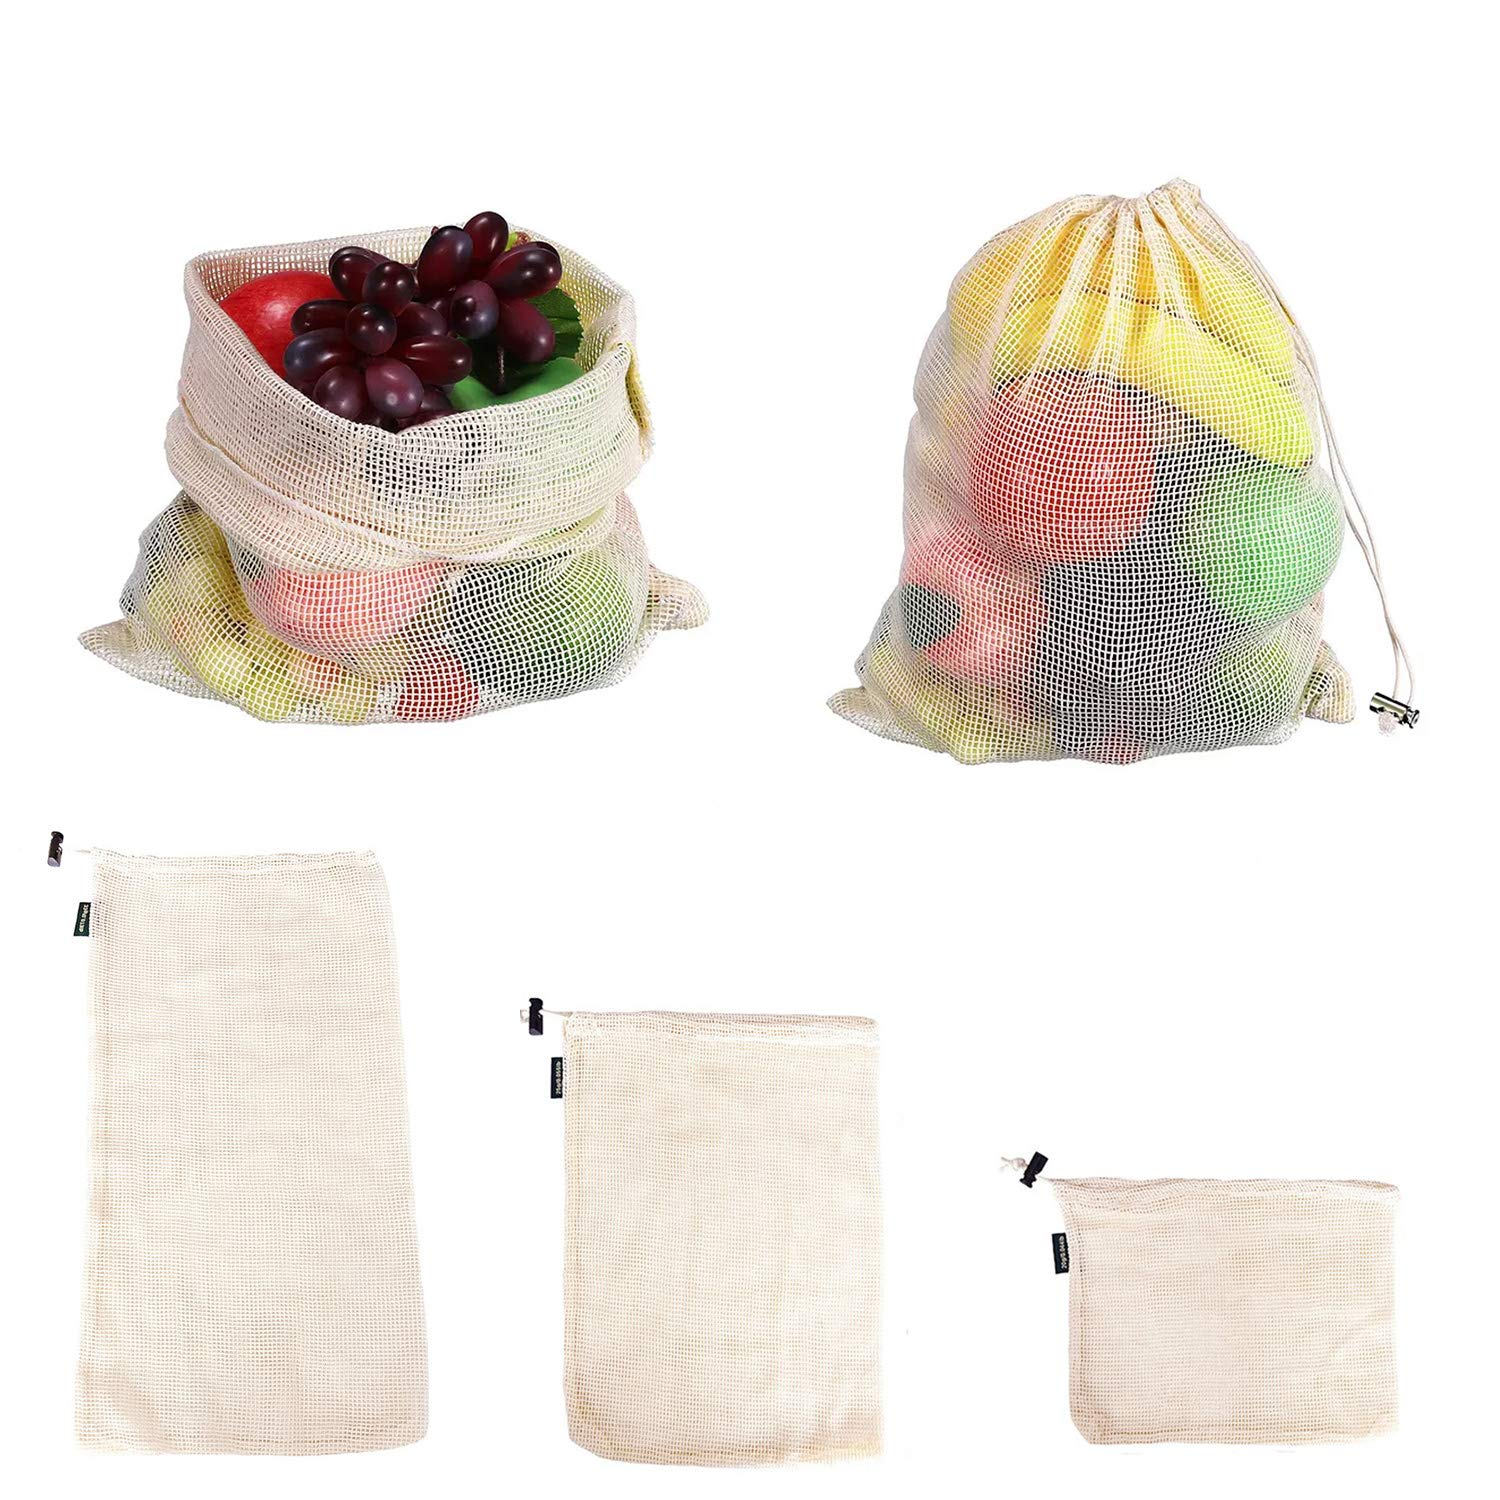 10pcs Mesh Shopping <strong>Bag</strong> Cotton Market Net Shopping Tote Washable Mesh Fruit Vegetable Pack storage